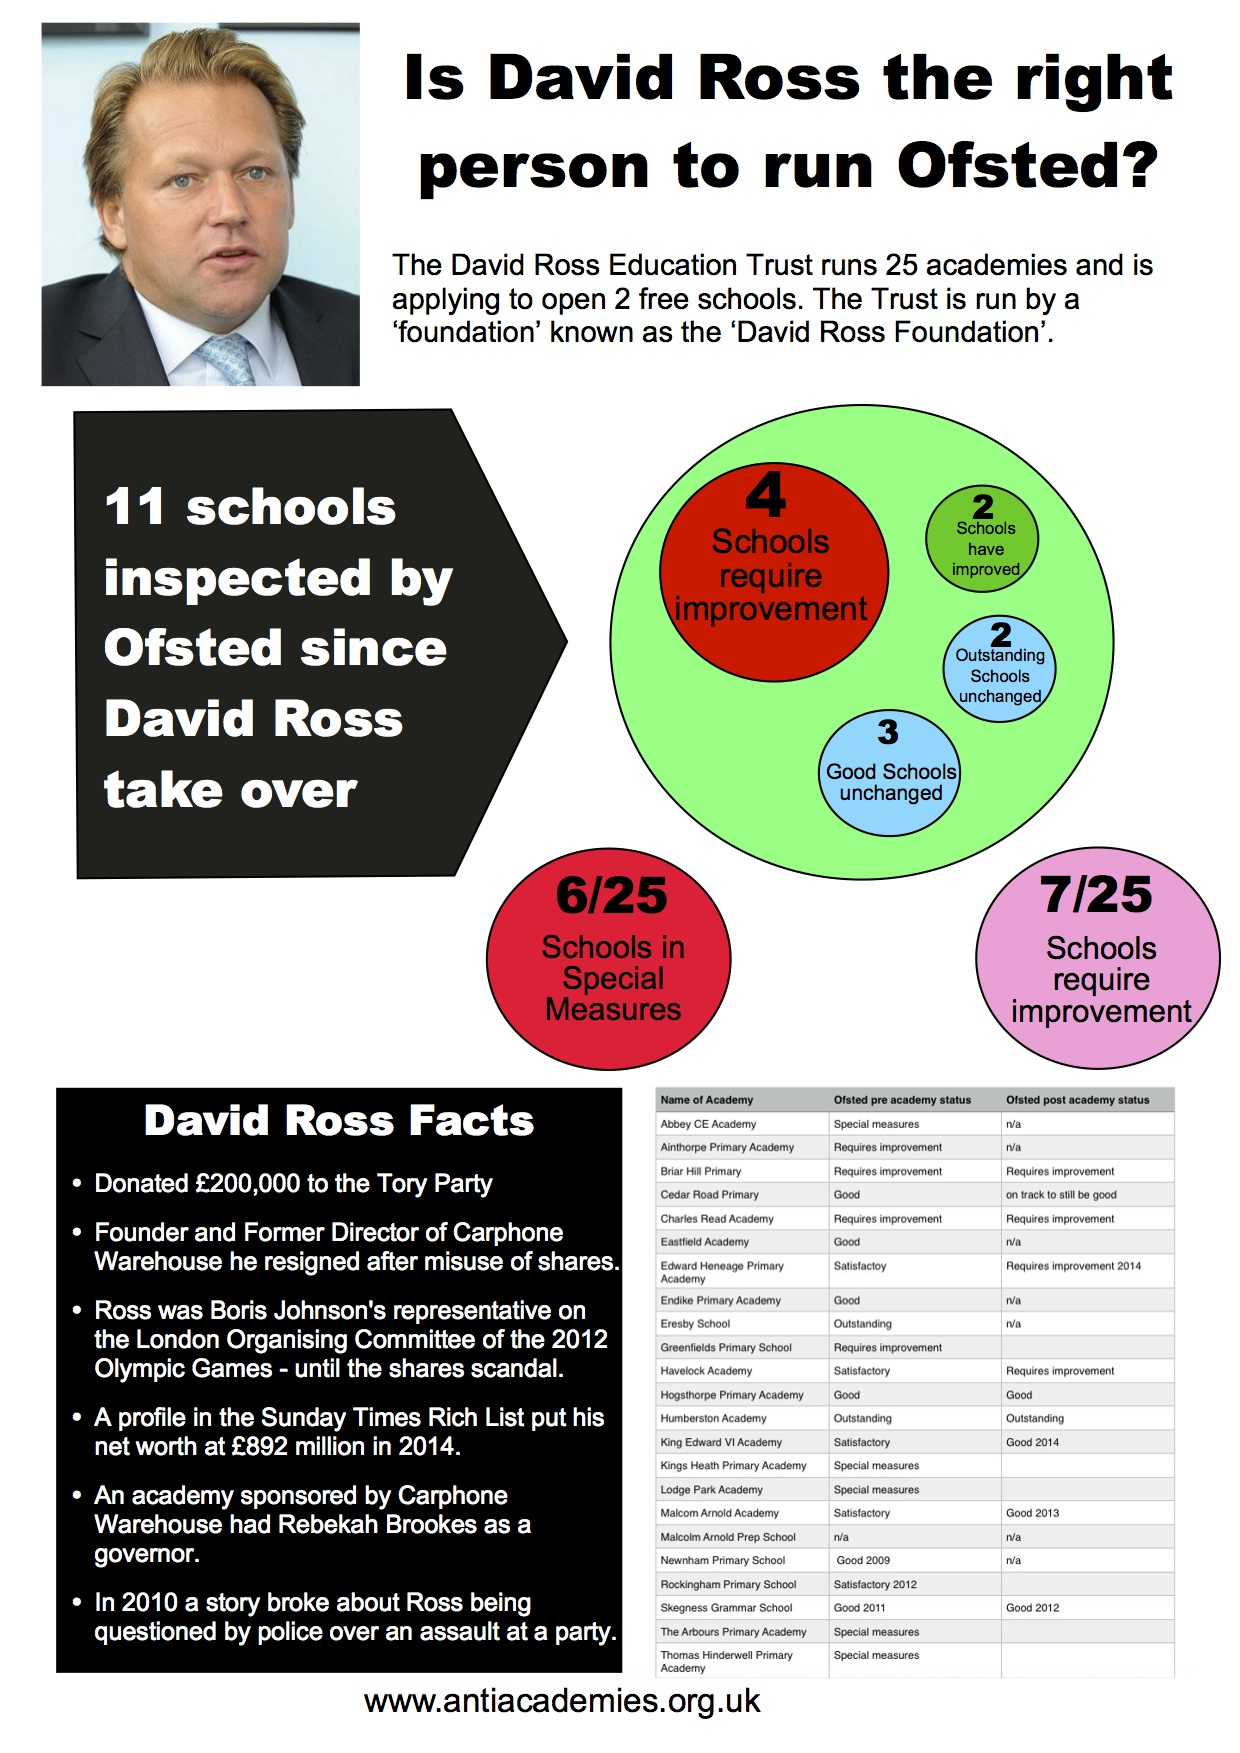 is-david-ross-the-right-person-to-run-ofsted-final